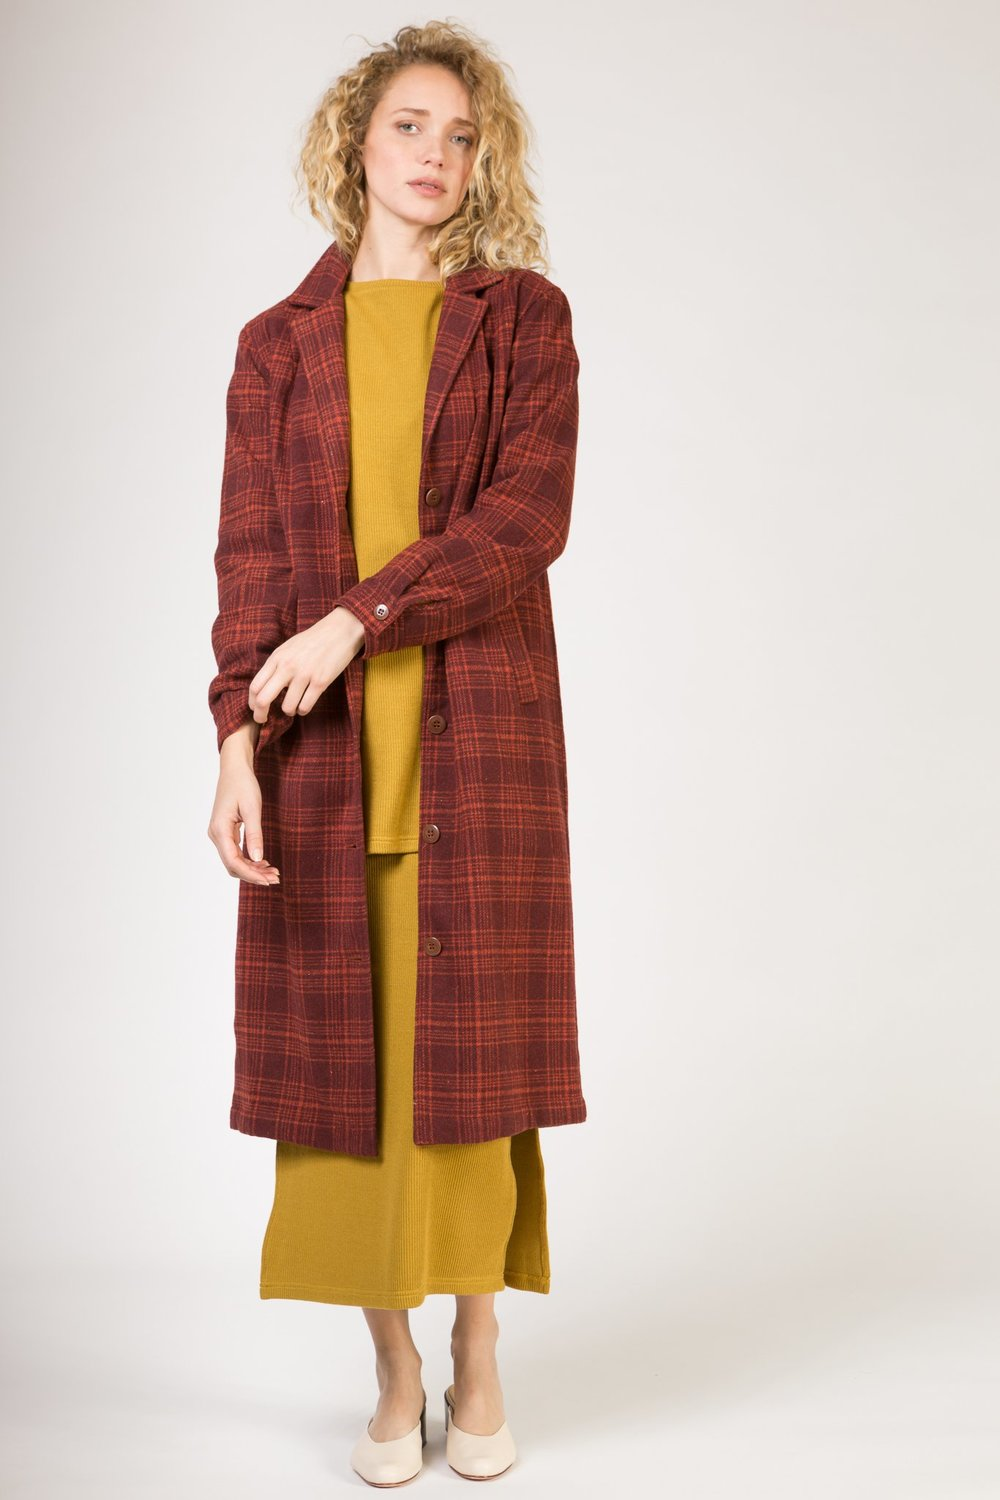 DUSTER - WINE PLAID $ 169